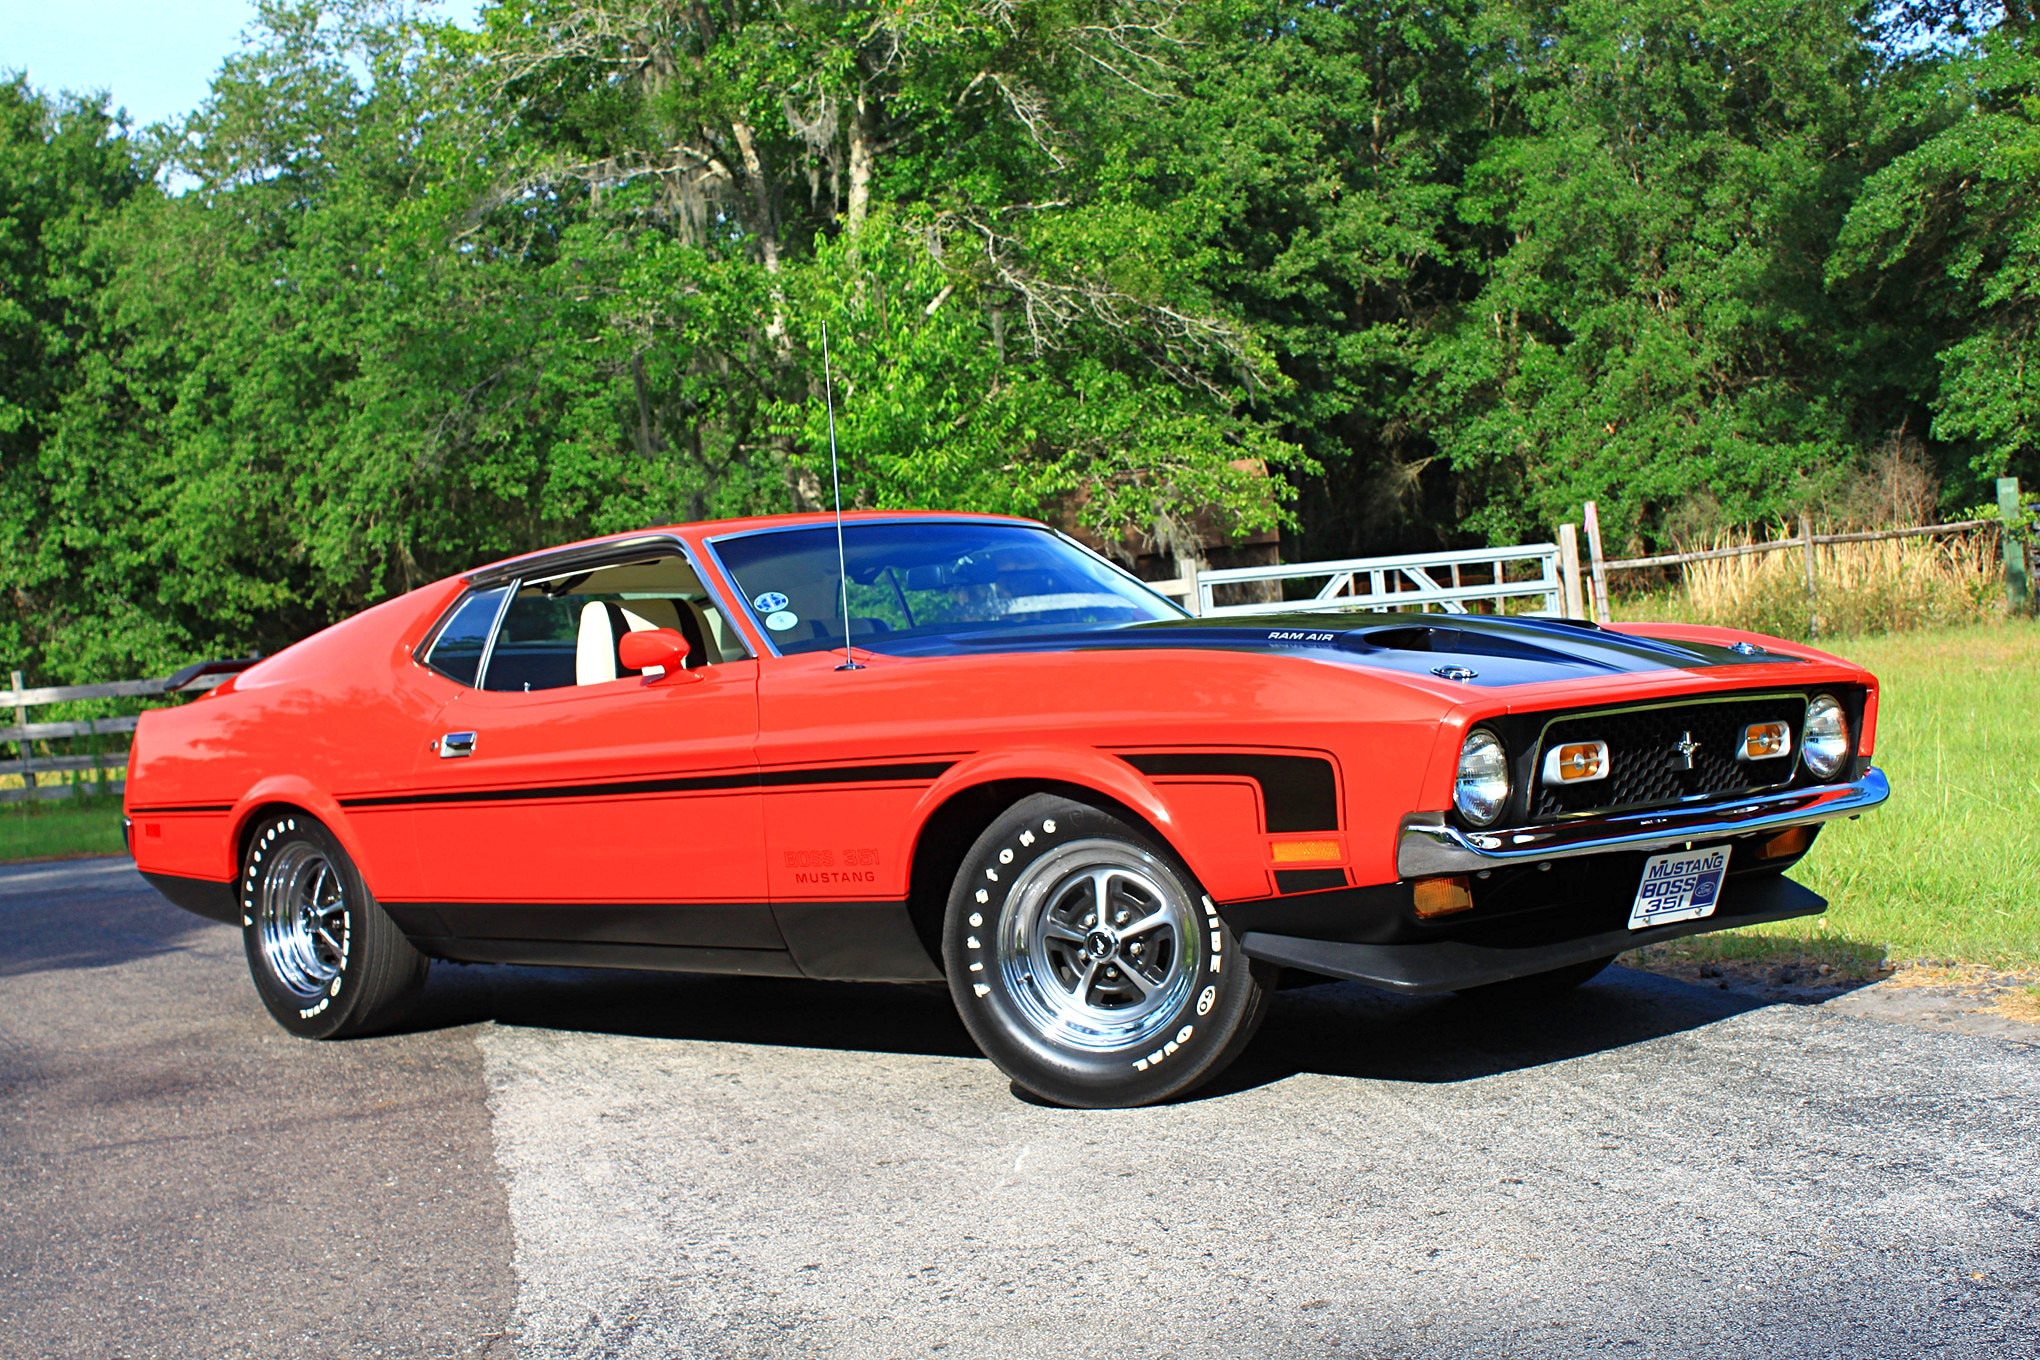 44 1971 Ford Mustang Boss 351 Red Front Three Quarter